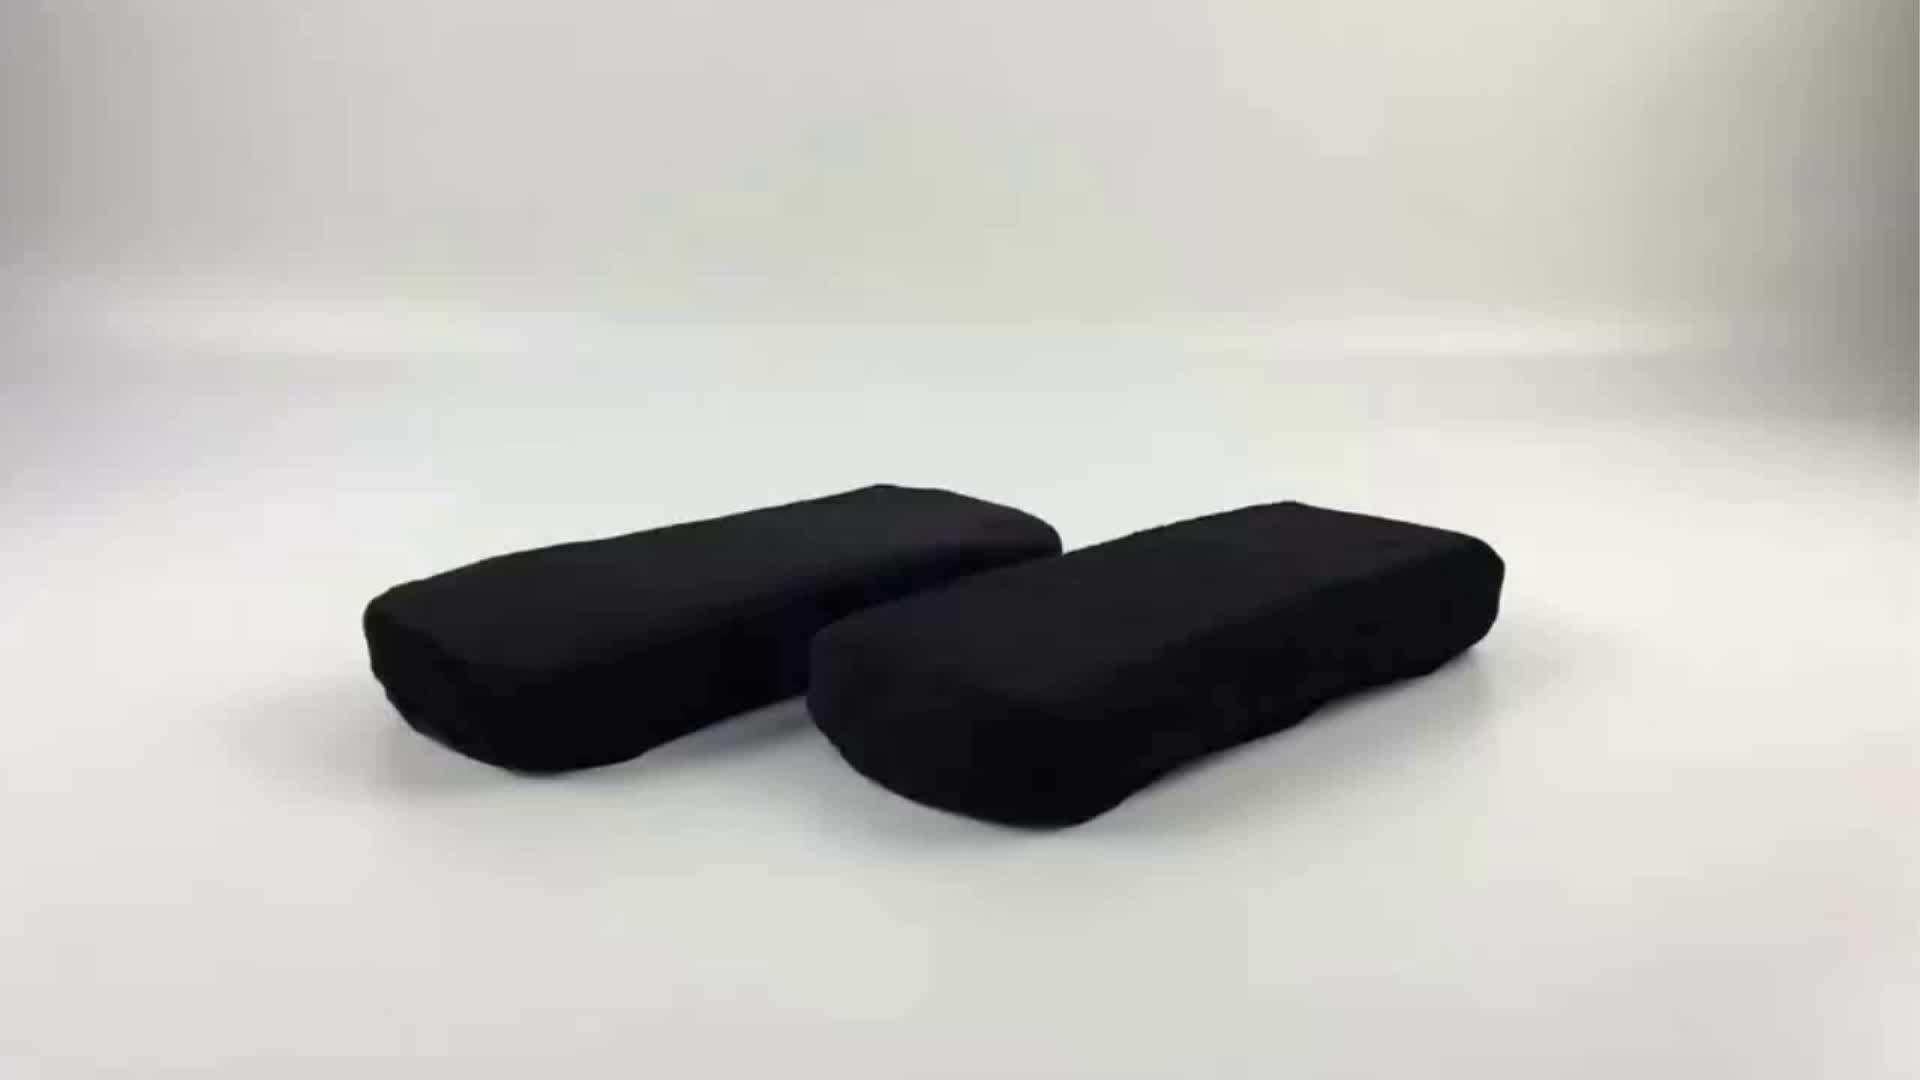 Memory Foam Arm Rest Office Chair Arm Pads Universal for Armrest and Elbow Relief